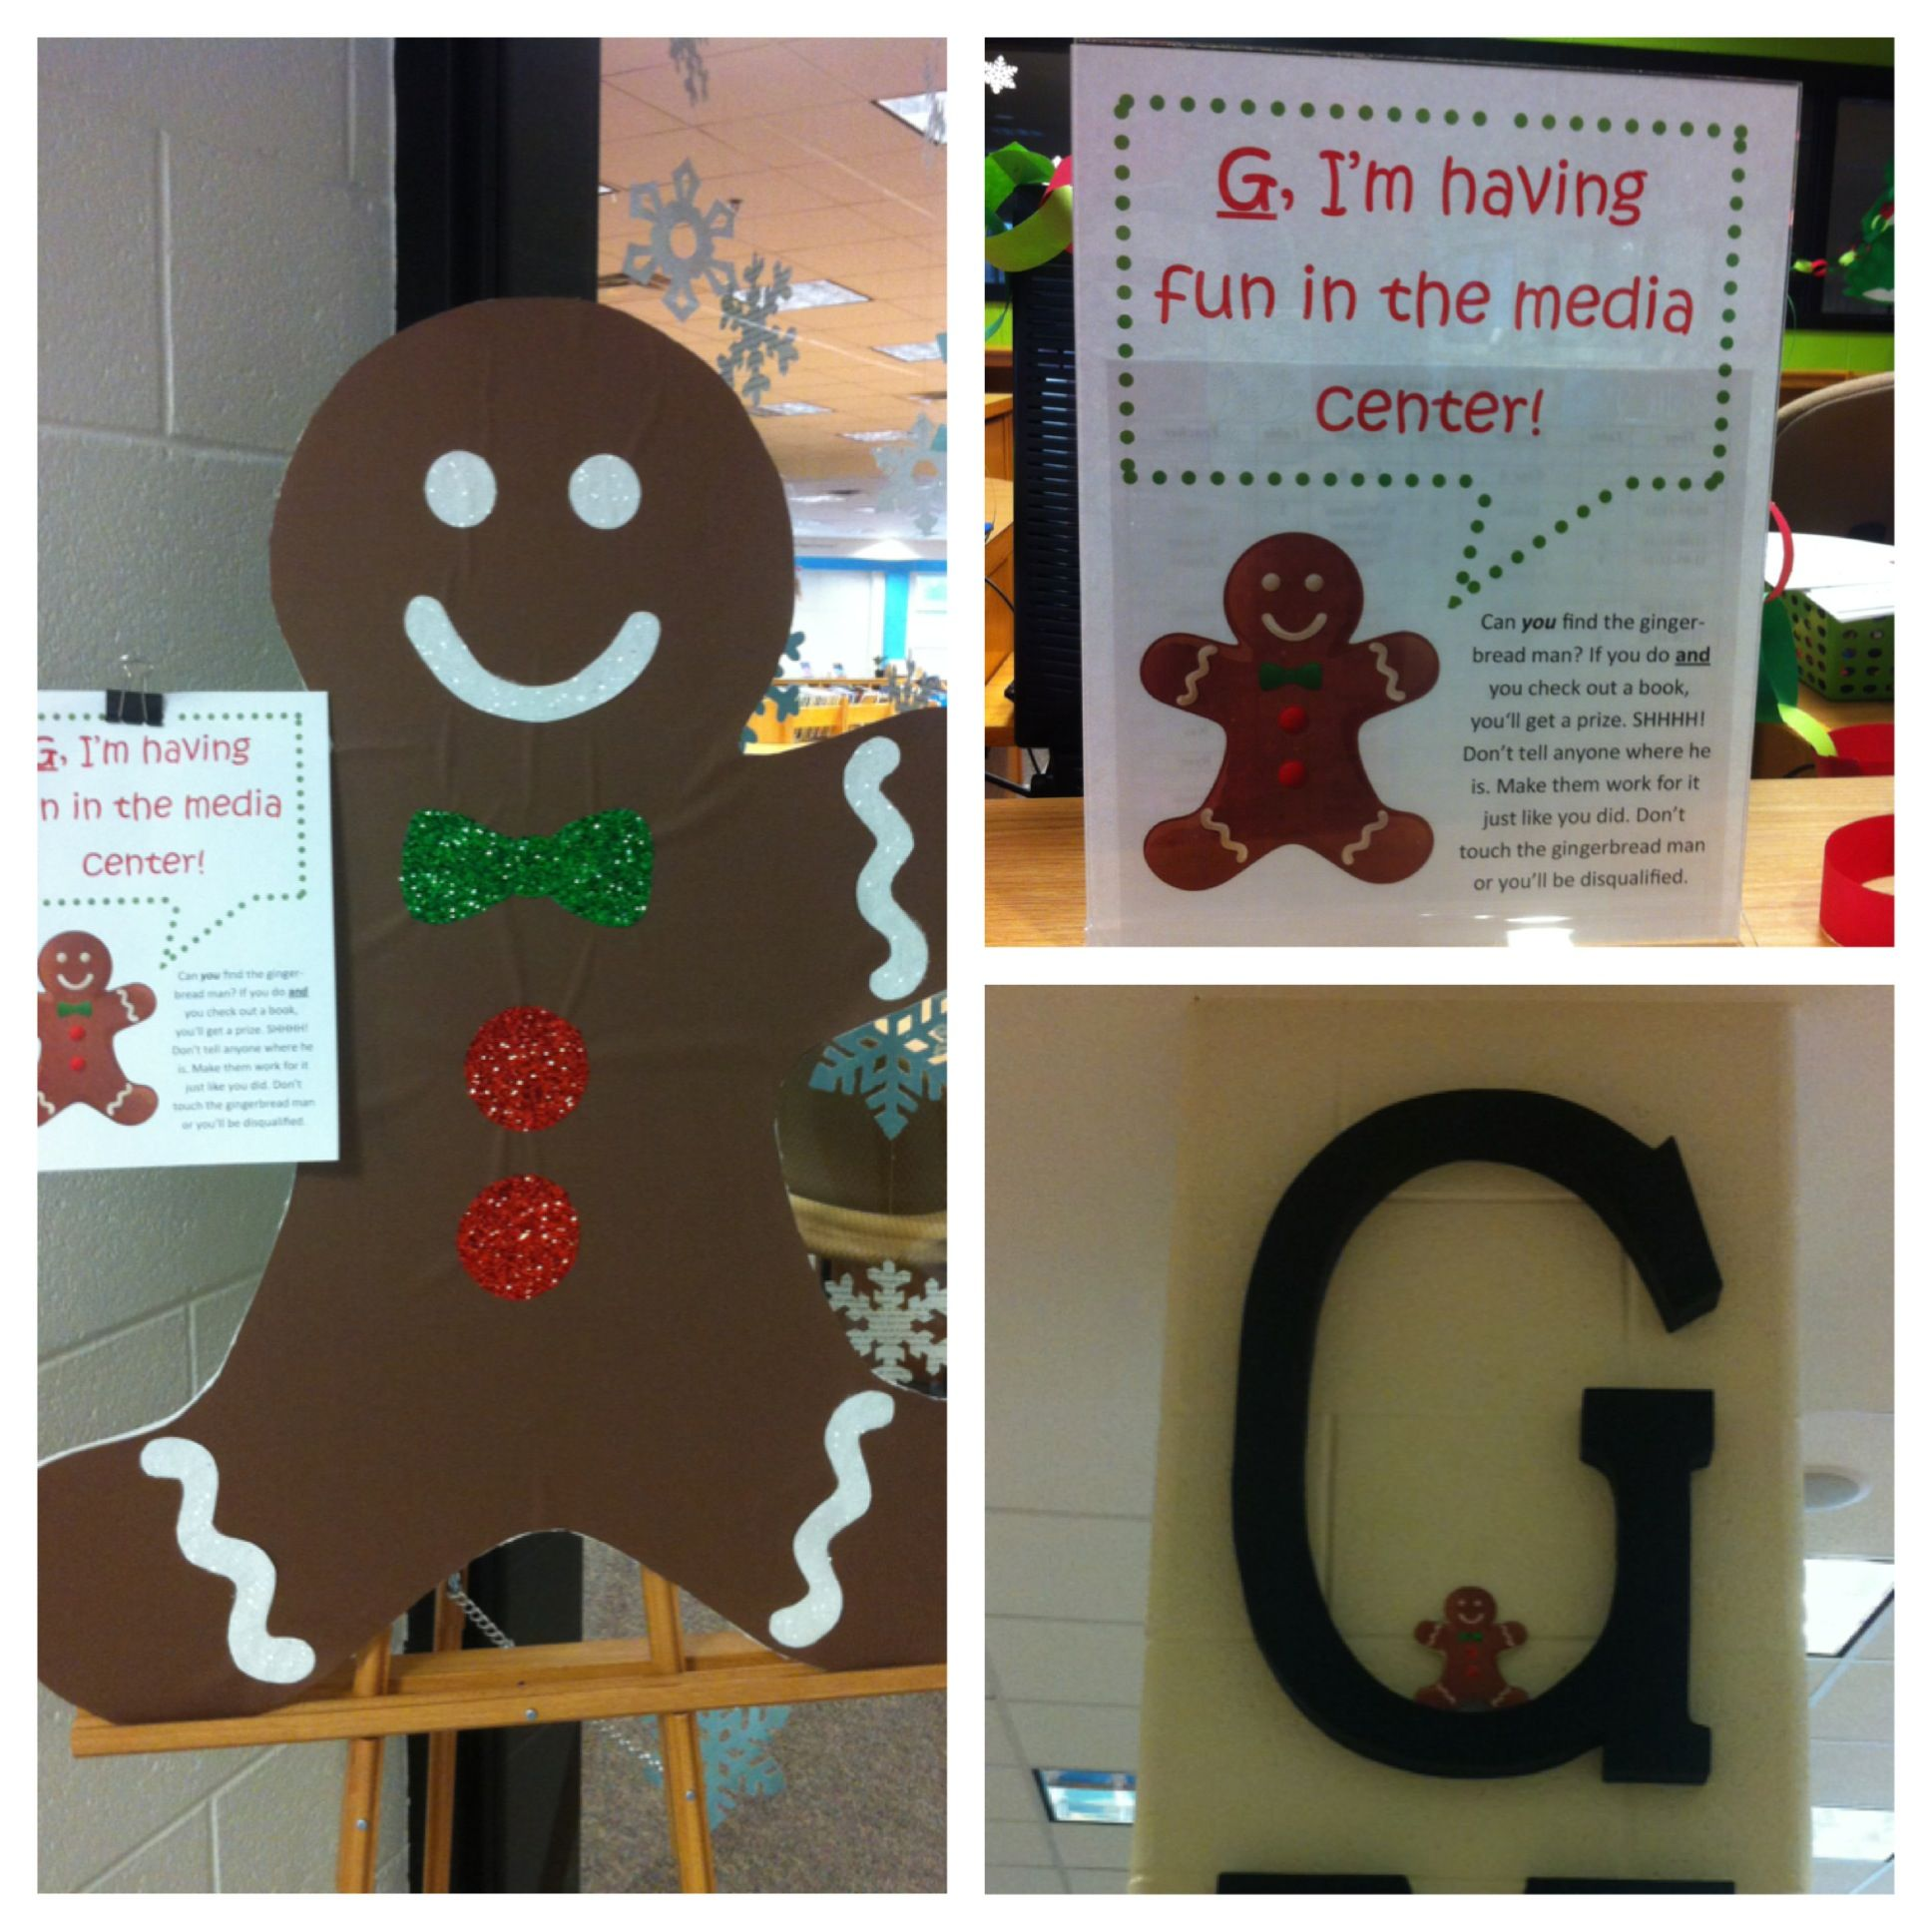 Every Day We Hide The Gingerbread Man In A New Spot In The Media